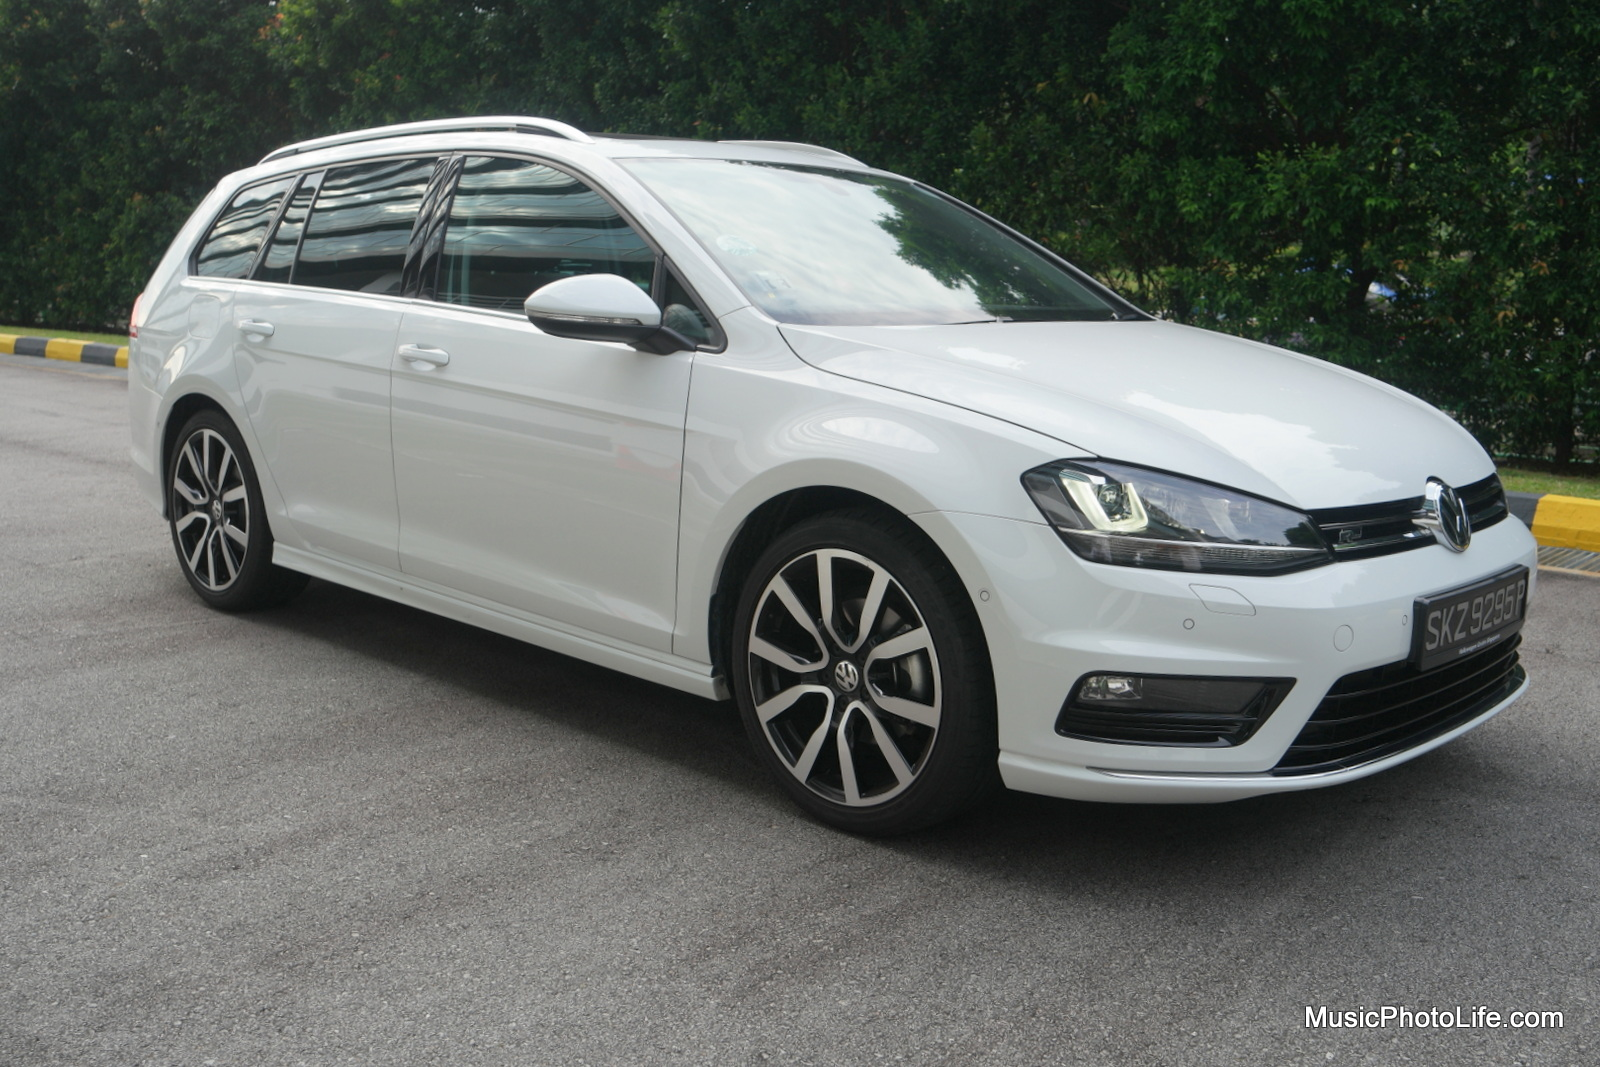 Volkswagen Golf Variant side view - review by musicphotolife.com